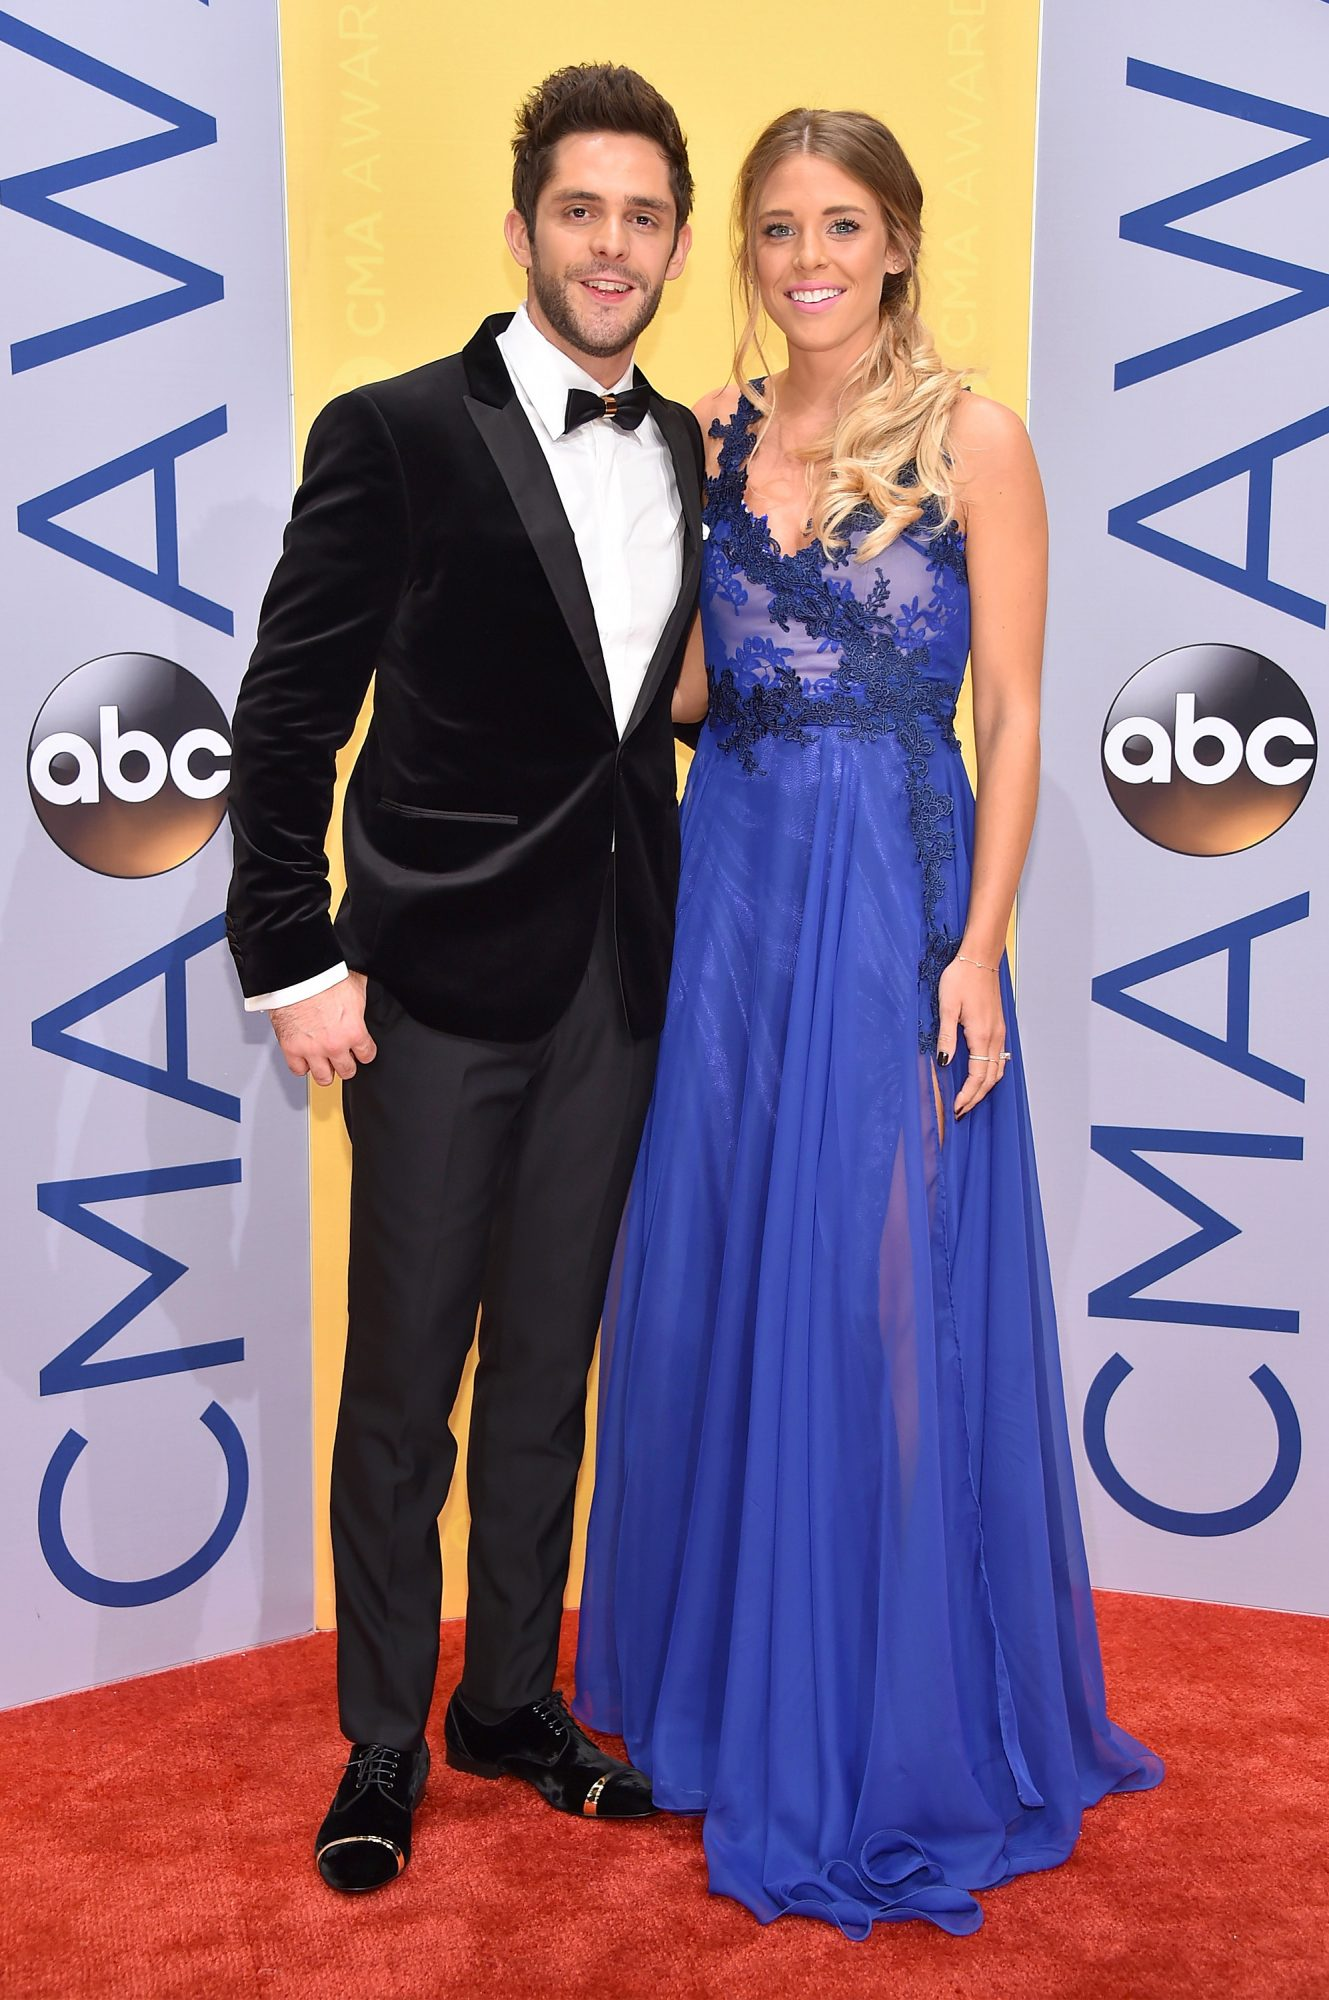 NASHVILLE, TN - NOVEMBER 02: Singer-songwriter Thomas Rhett (L) and Lauren Gregory attend the 50th annual CMA Awards at the Bridgestone Arena on November 2, 2016 in Nashville, Tennessee. (Photo by Michael Loccisano/Getty Images)